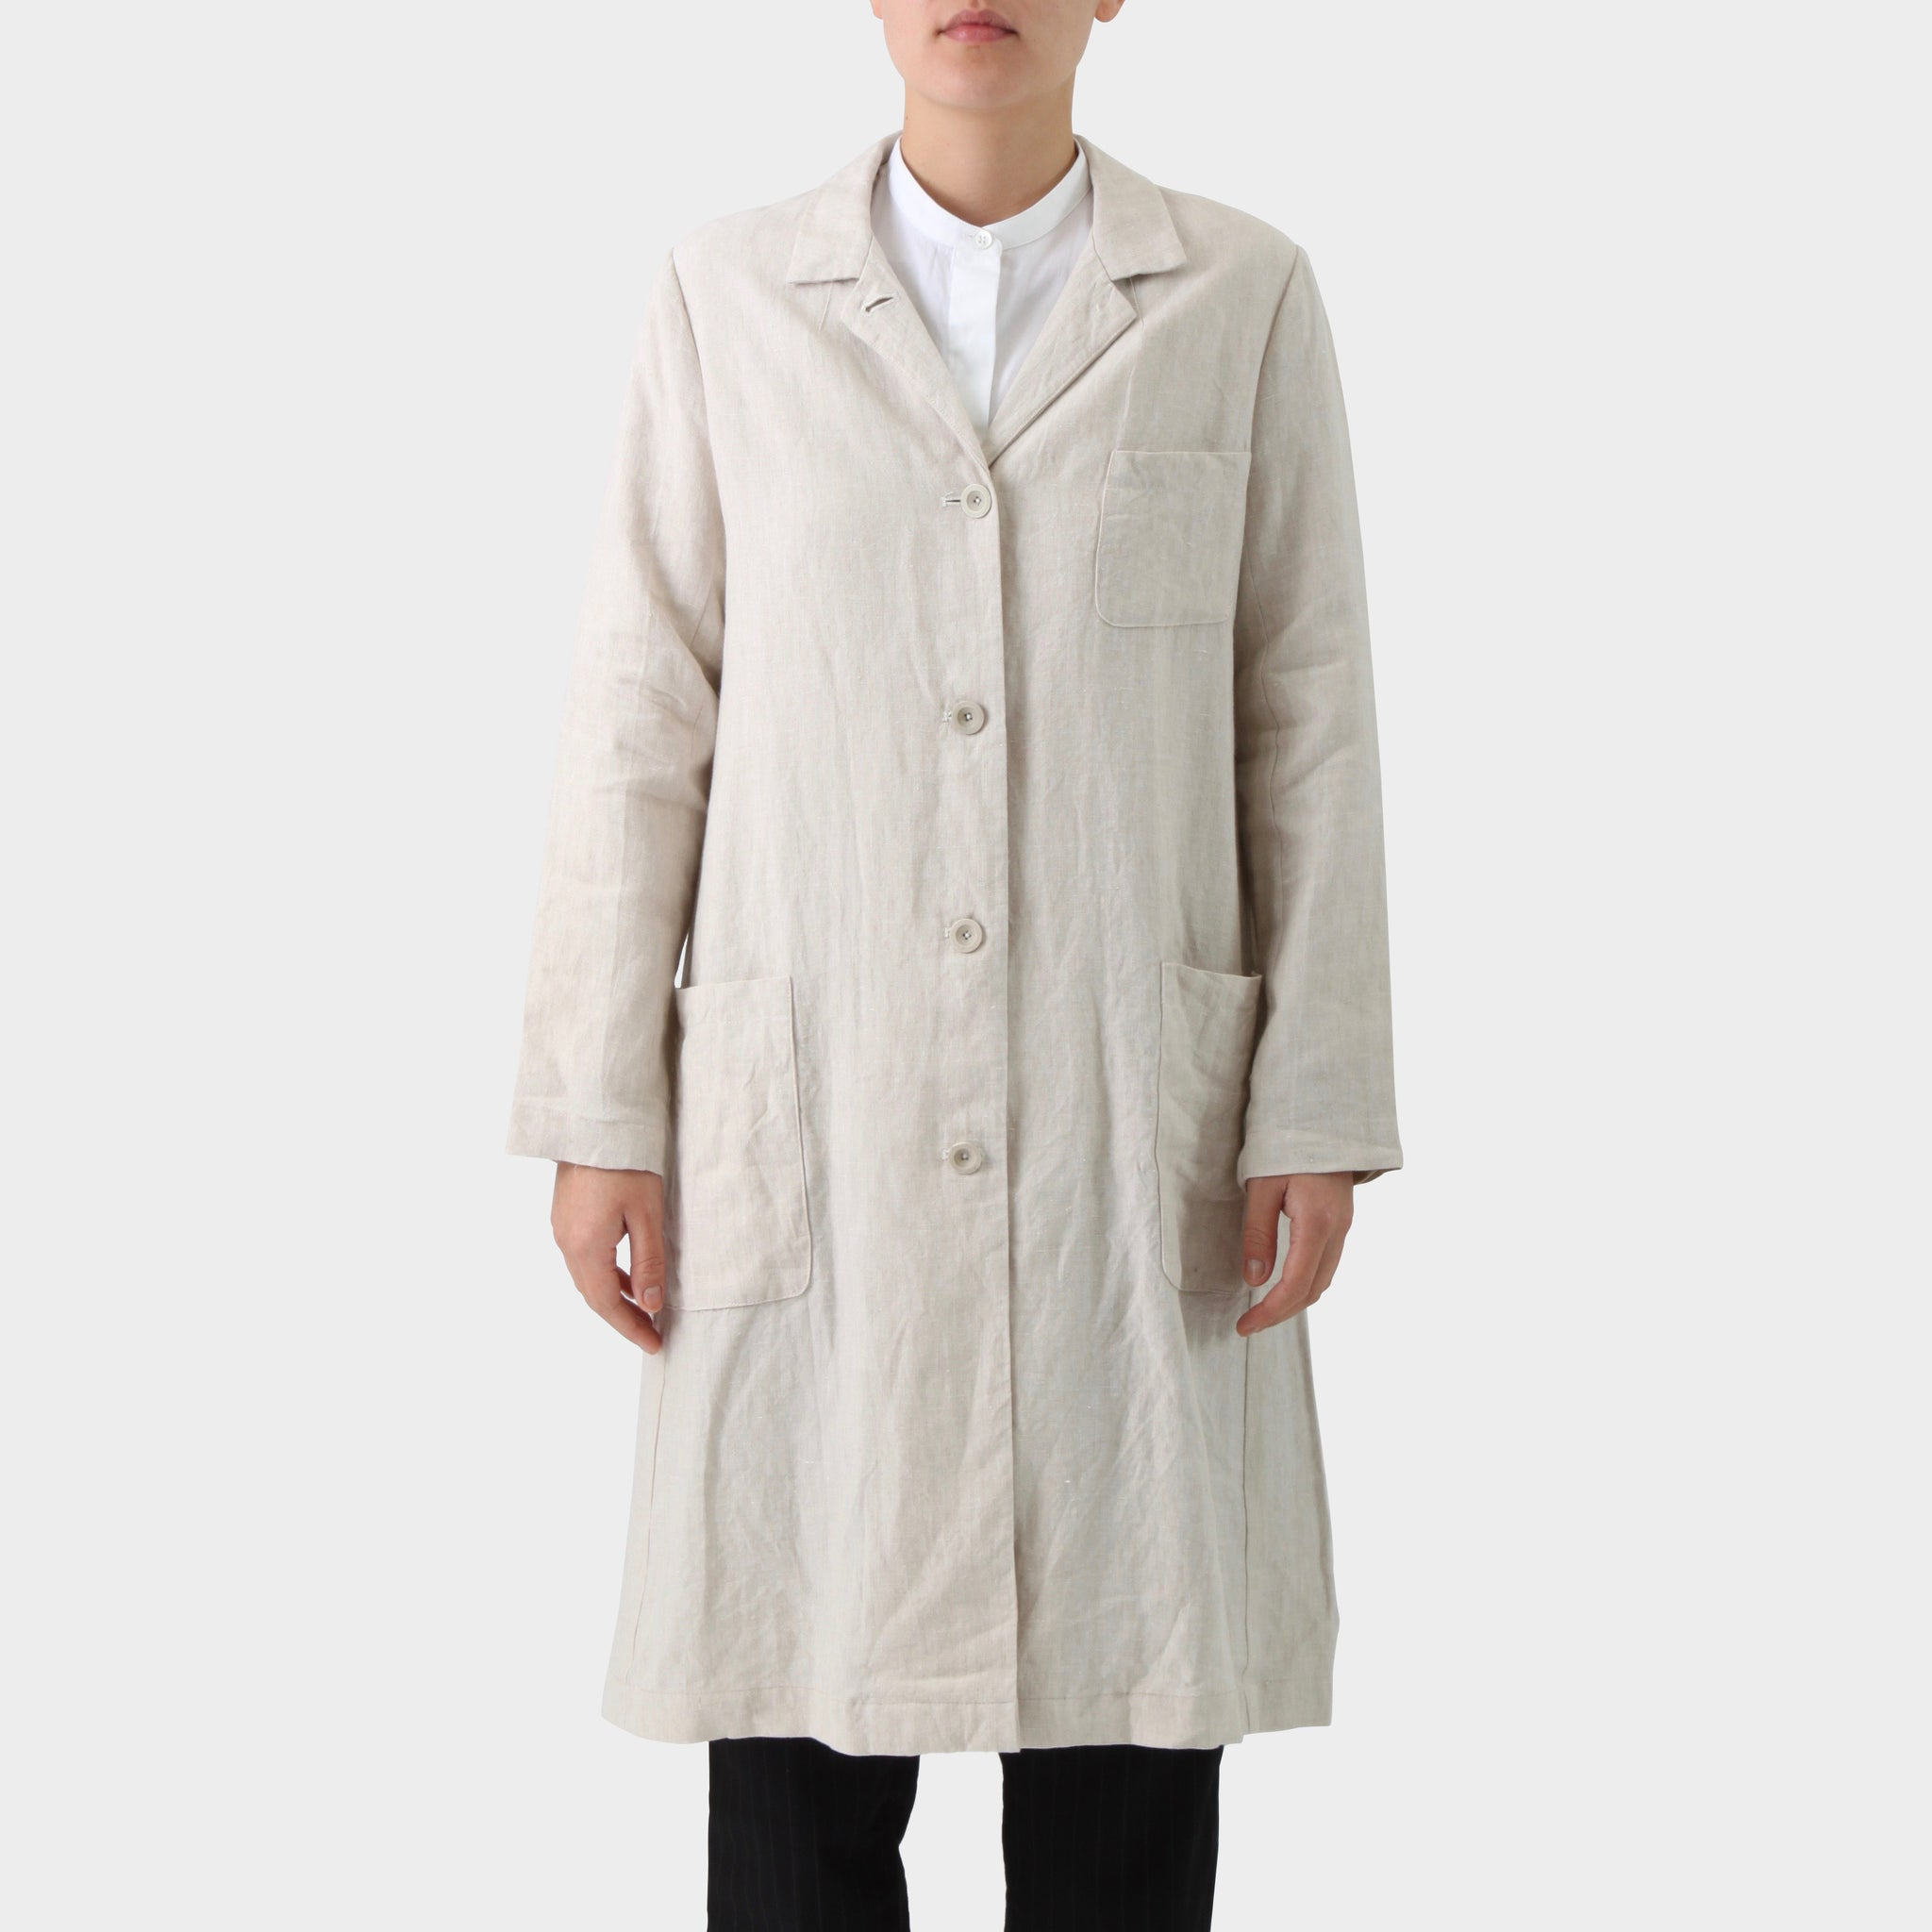 Samuel Snider Beige Linen Button Down Longline Coat